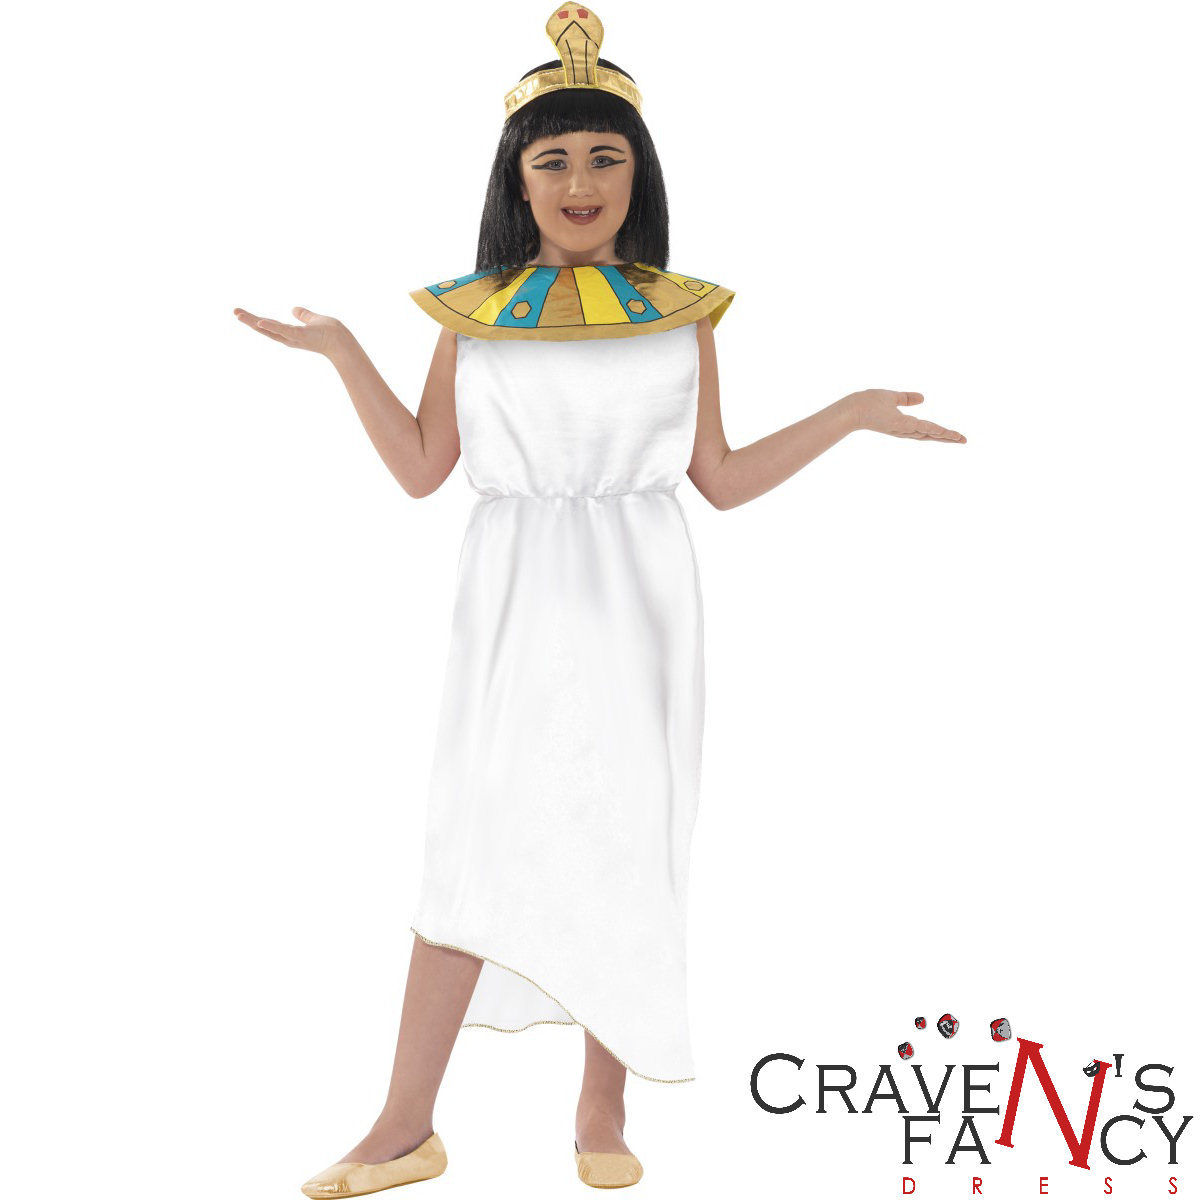 Kids Cleopatra Costume Girls Queen of the Nile Egyptian Book Day Fancy Dress New  sc 1 st  eBay & Kids Cleopatra Costume Girls Queen of the Nile Egyptian Book Day ...